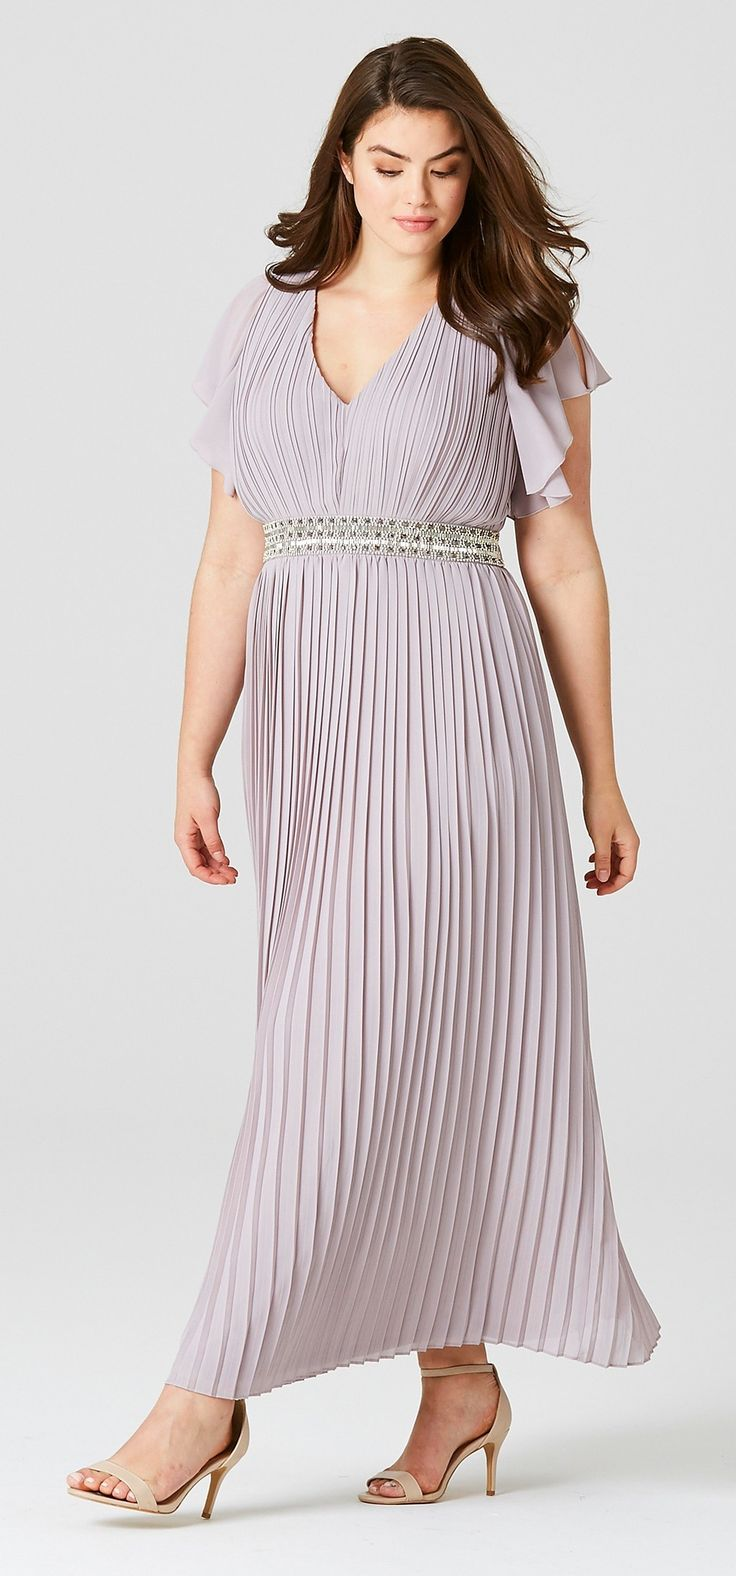 45 plus size wedding guest dresses with sleeves plus